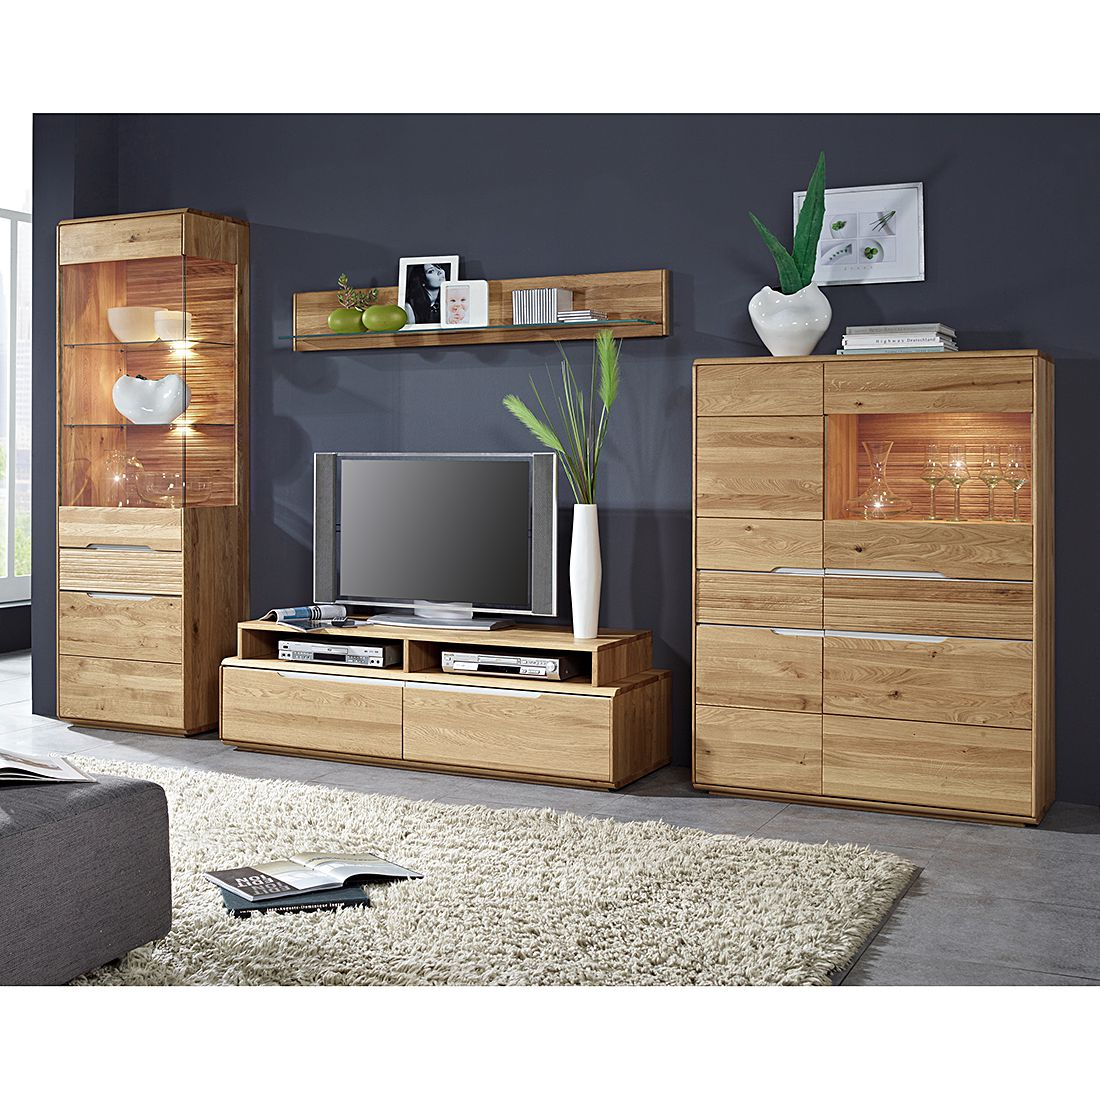 m bel online g nstig kaufen ber shop24. Black Bedroom Furniture Sets. Home Design Ideas